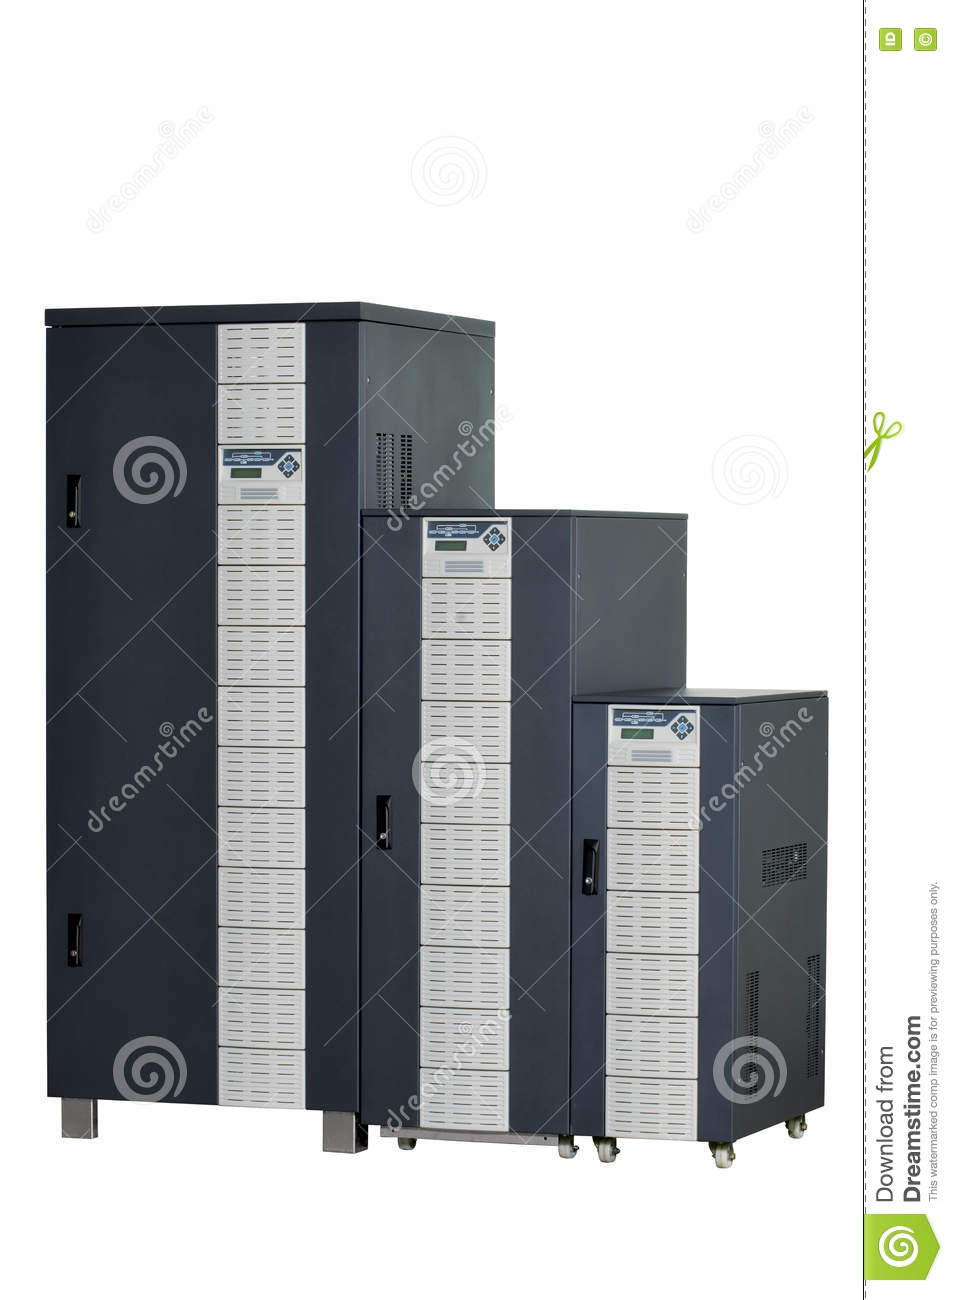 hight resolution of electrical ups control panel enclosure its door closed could be circuit breaker fuse box server power source other 79177195 jpg